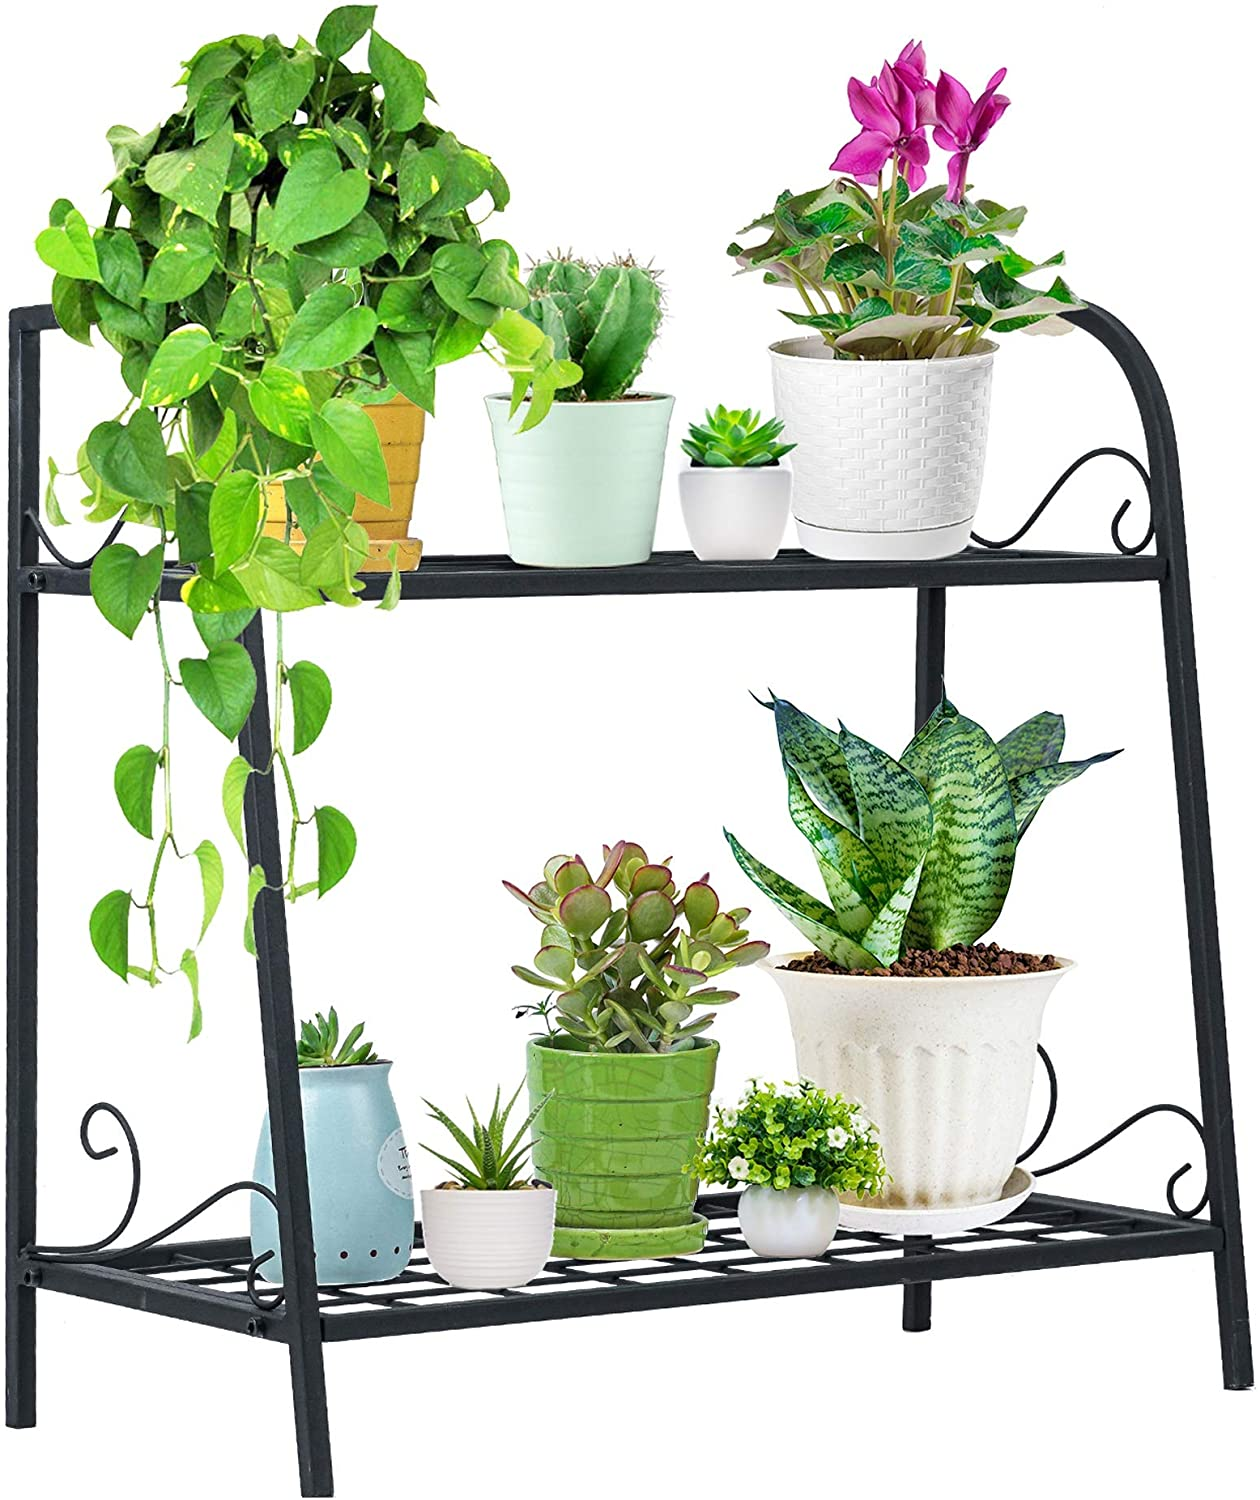 Indefree Metal Plant-Stands Indoor-Outdoor 2-Tier - Plant Flower Pot Display Rack Stand Shelf Multifunctional Home Storage Organizer Shelf for Home, Garden, Patio,Yard (Black)